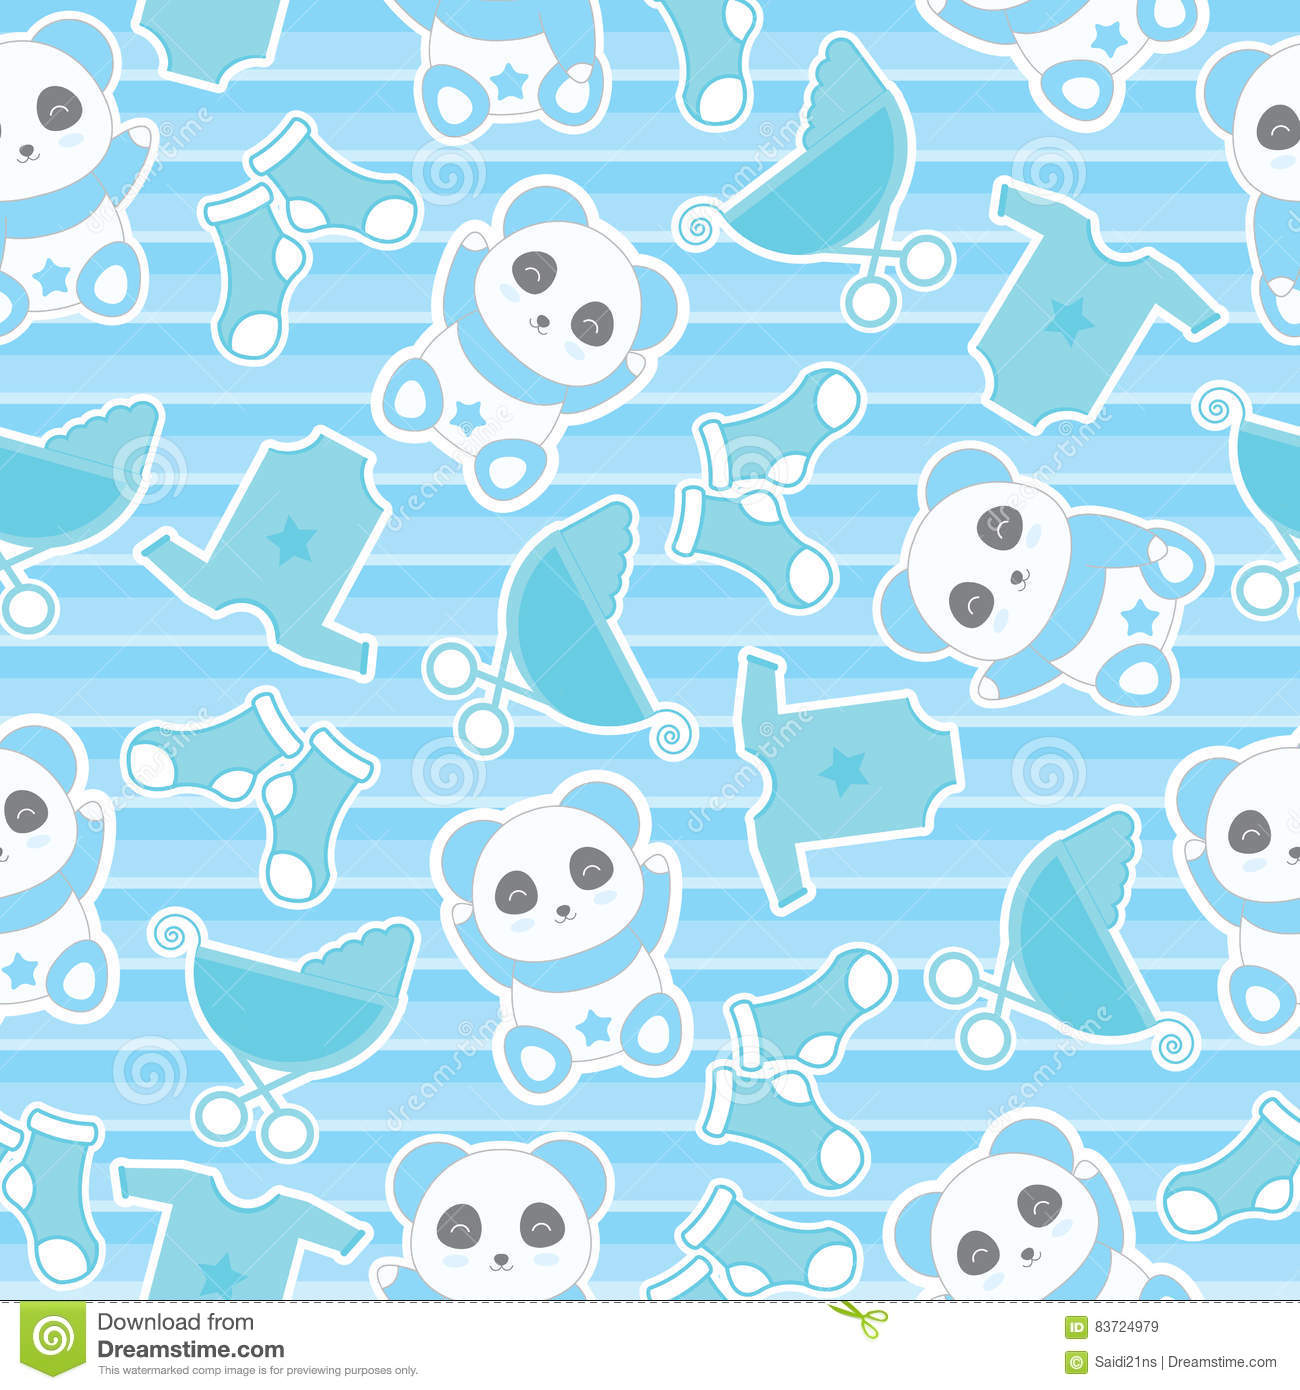 Seamless Background Of Baby Shower Illustration With Cute Baby Boy Panda And Baby Clothes On Stripes Background Illustration 83724979 Megapixl